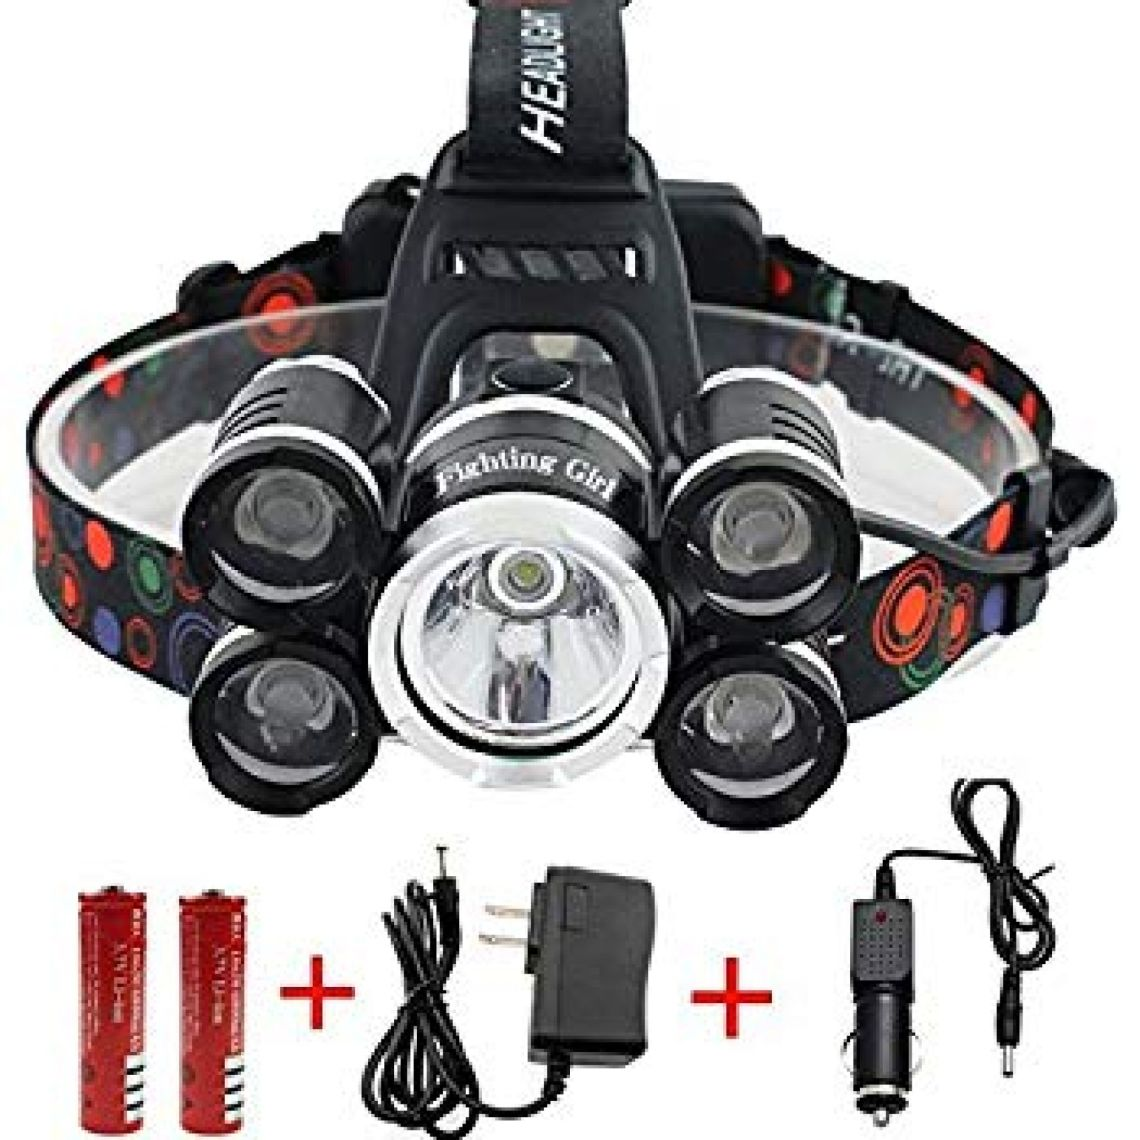 Waterproof 12000 Lumen 5 Led Headlamp XML T6+4Q5 Head Lamp Powerful Led Headlight, 18650 Rechargeable Batteries, Car Charger, Wall Charger and USB Cable - - Amazon.com